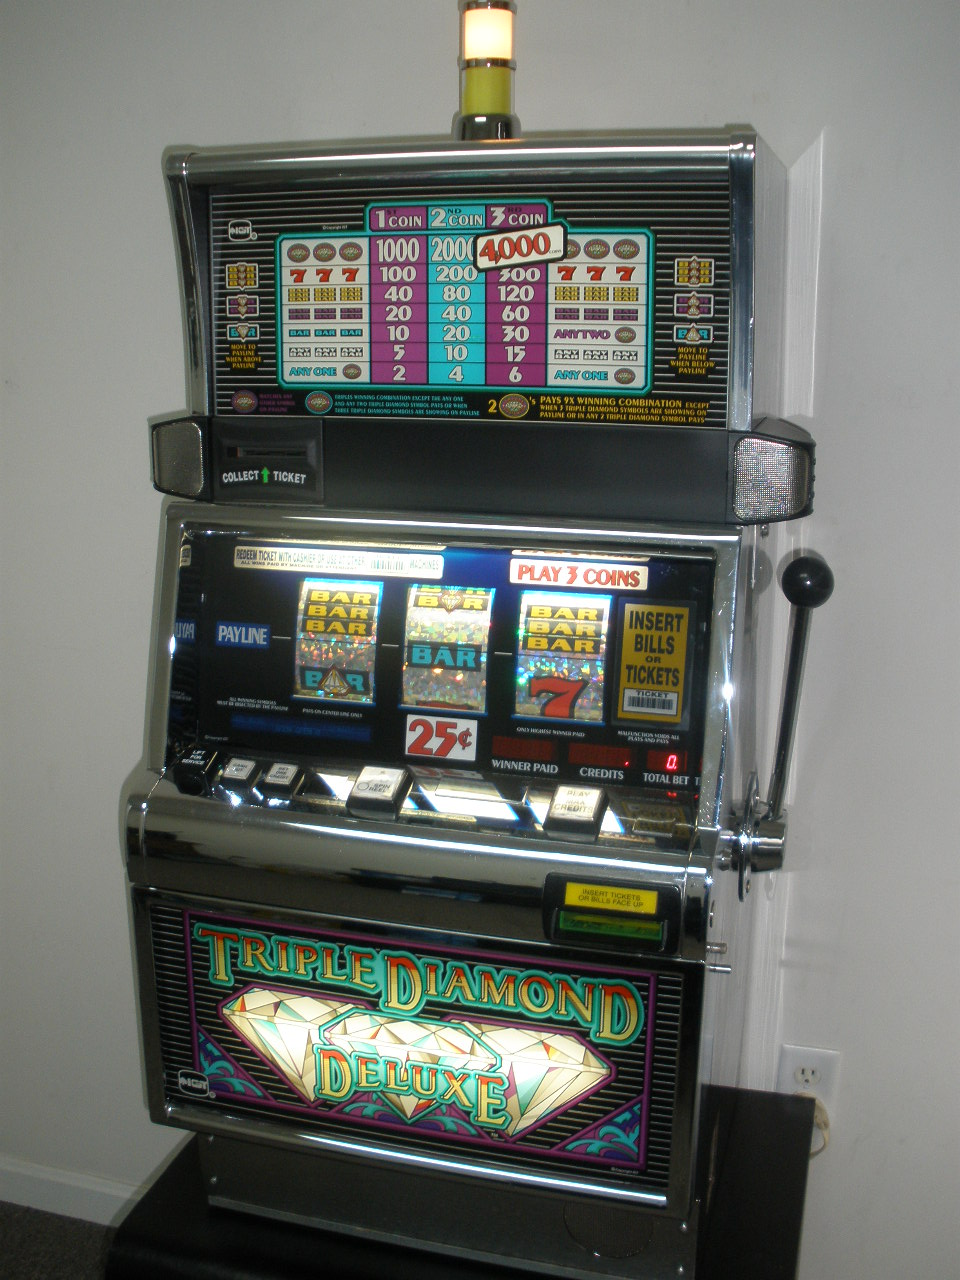 Slot machine jammer for sale - AT&T, Time Warner go to court in antitrust case over $85B merger